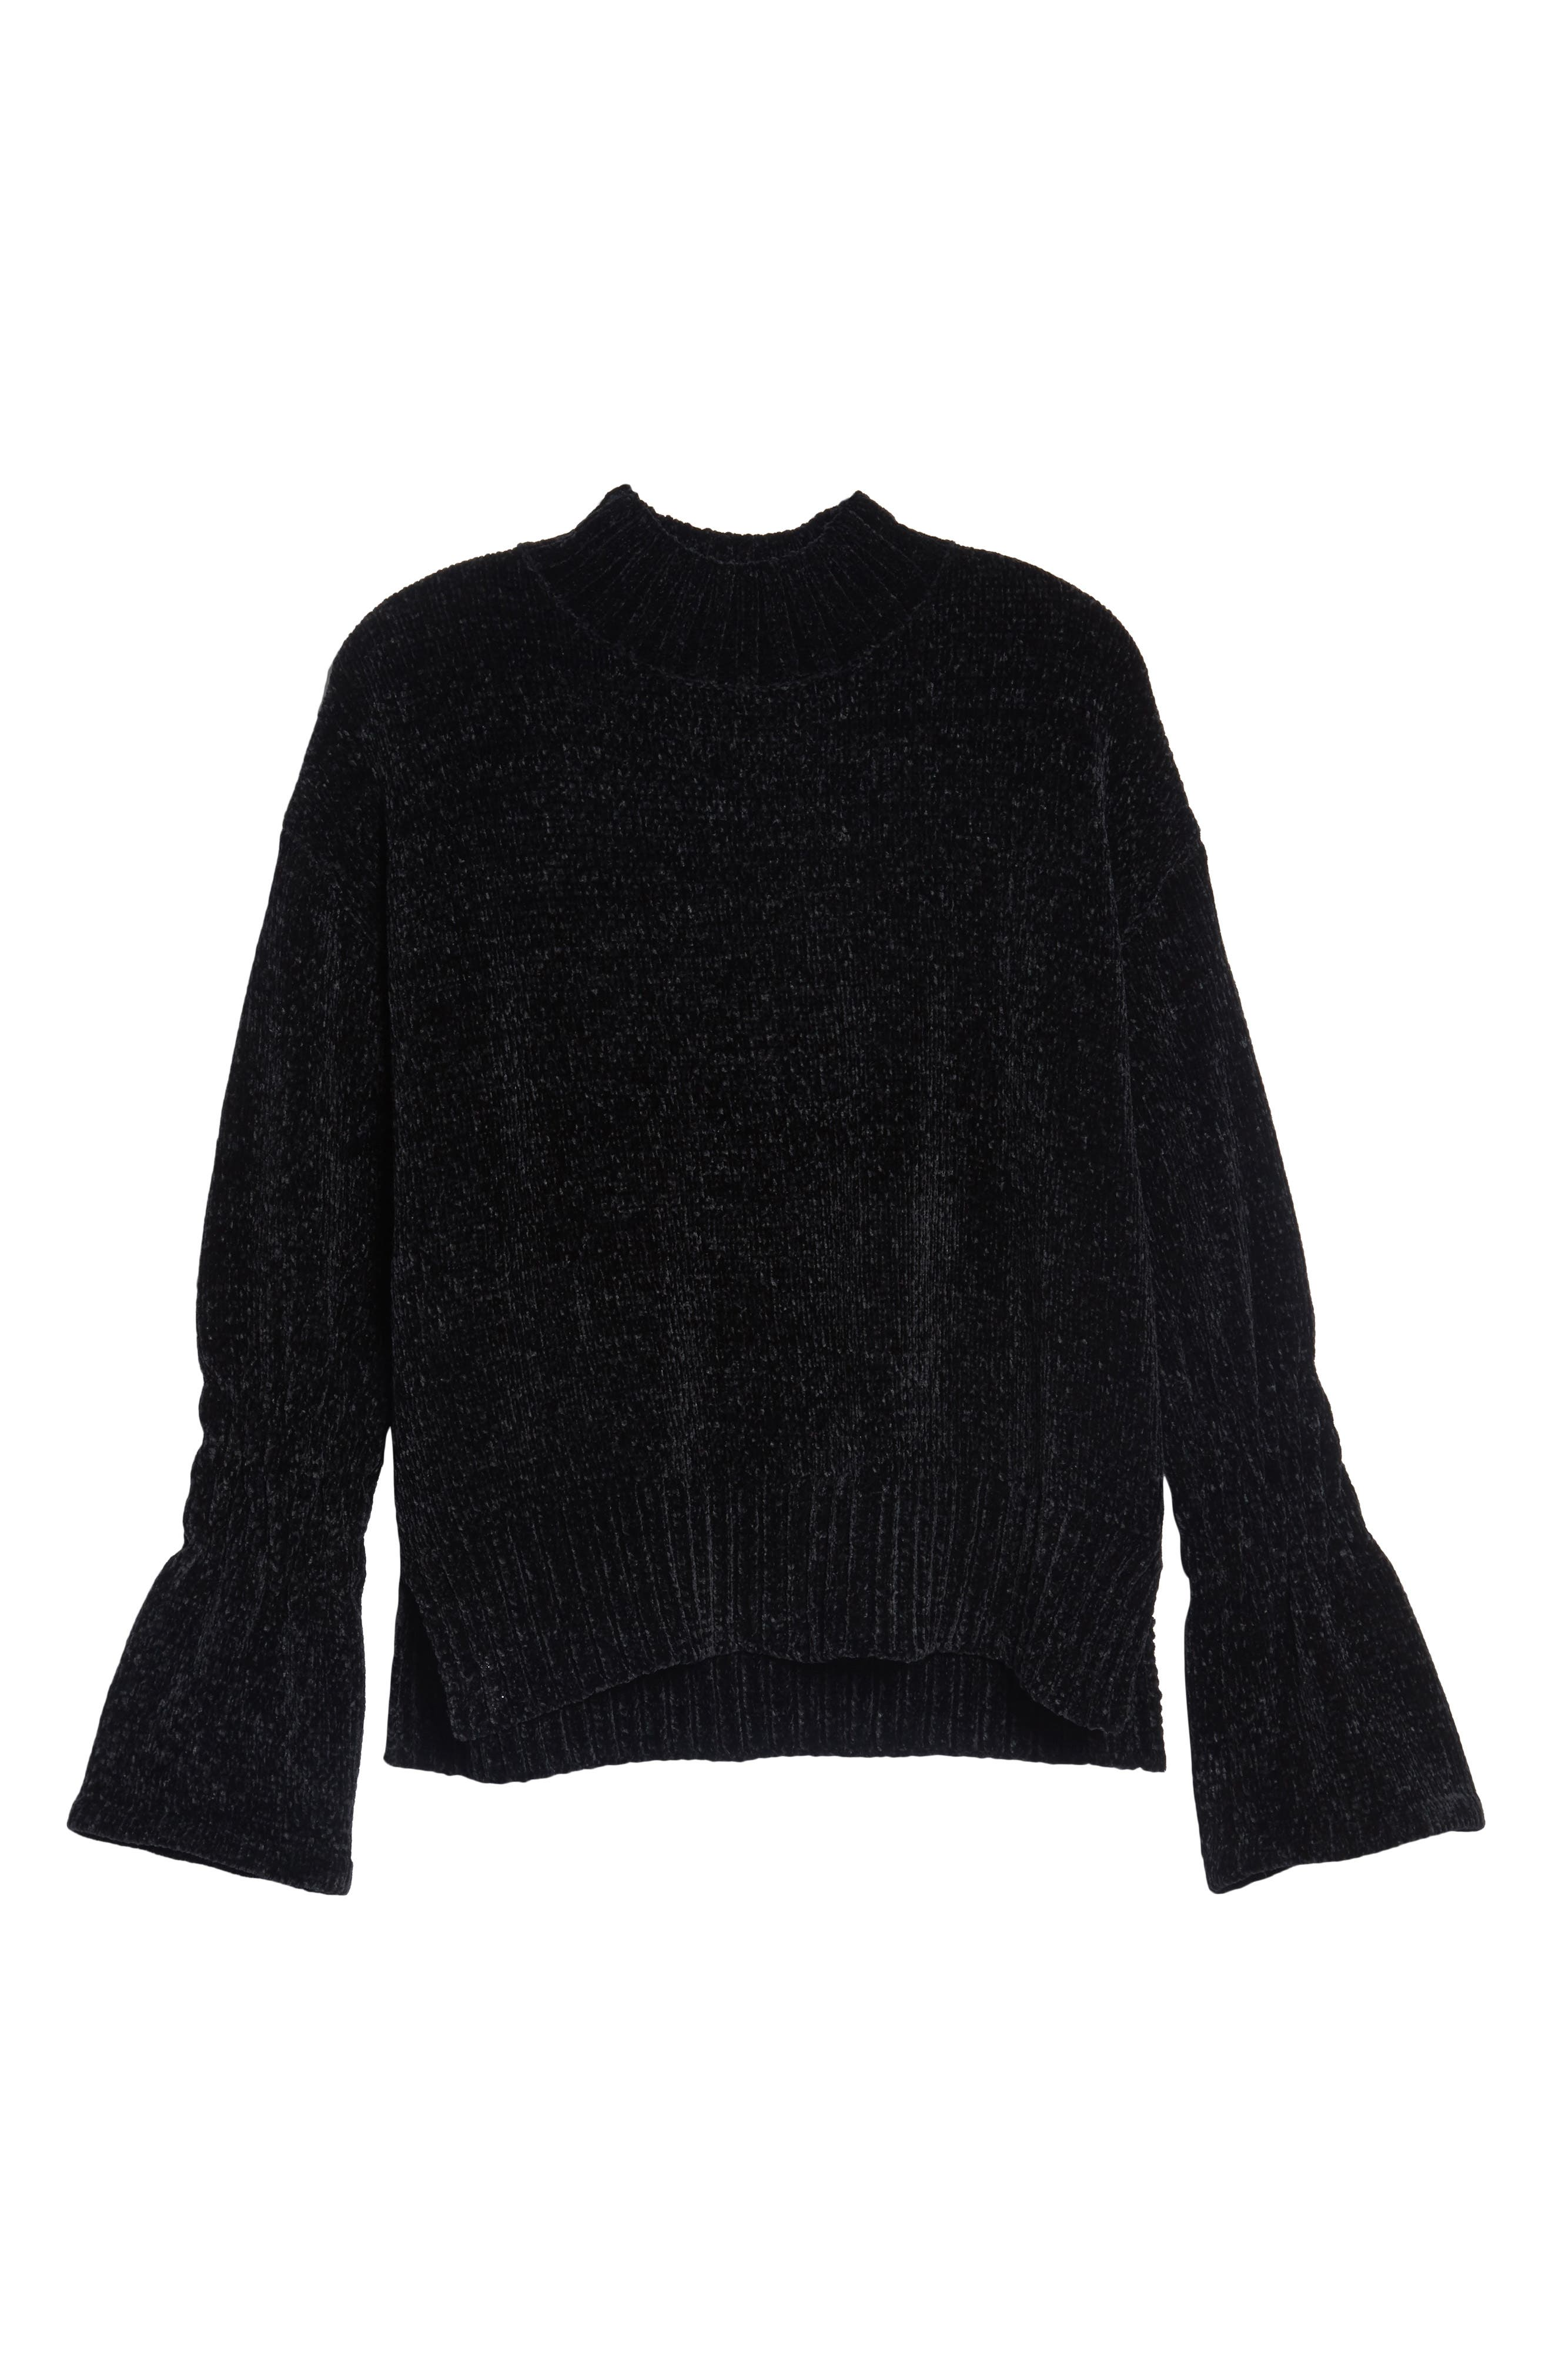 Bell Cuff Sweater,                             Alternate thumbnail 6, color,                             001